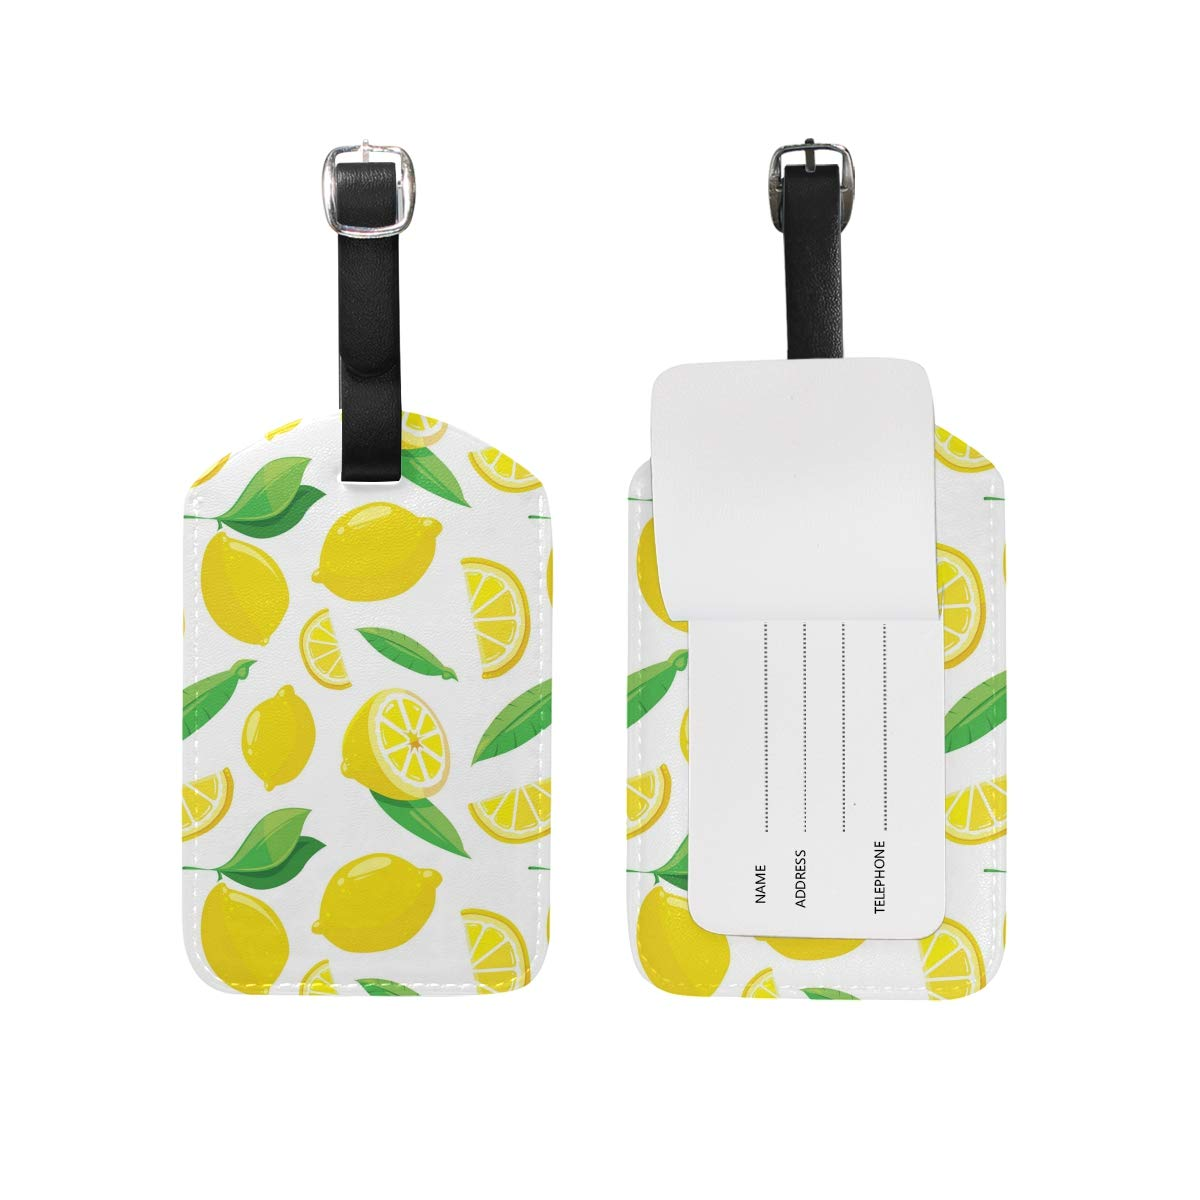 Lrregular Lemon Slice Sling PU Leather Luggage Tag Label Suitcase Travel Accessories 1 Piece